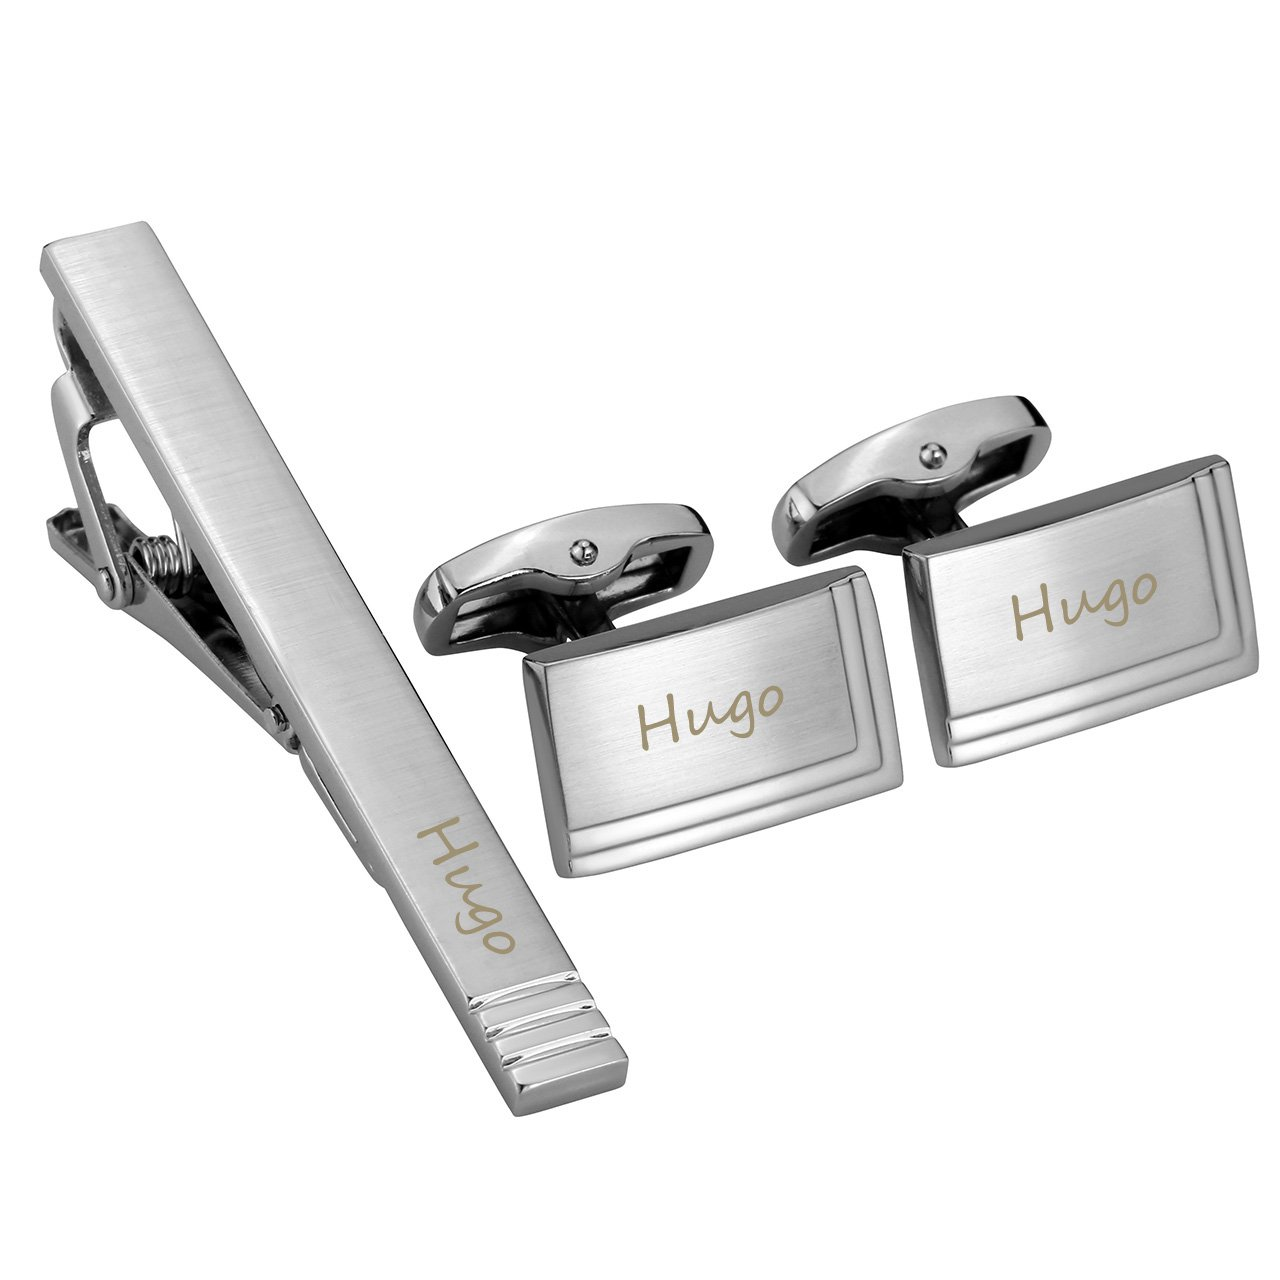 Jovivi Personalized Custom Name Message Tie Clip for Men Cufflinks Set Tuxedo Shirts Business Wedding in Gift Box(Silver)